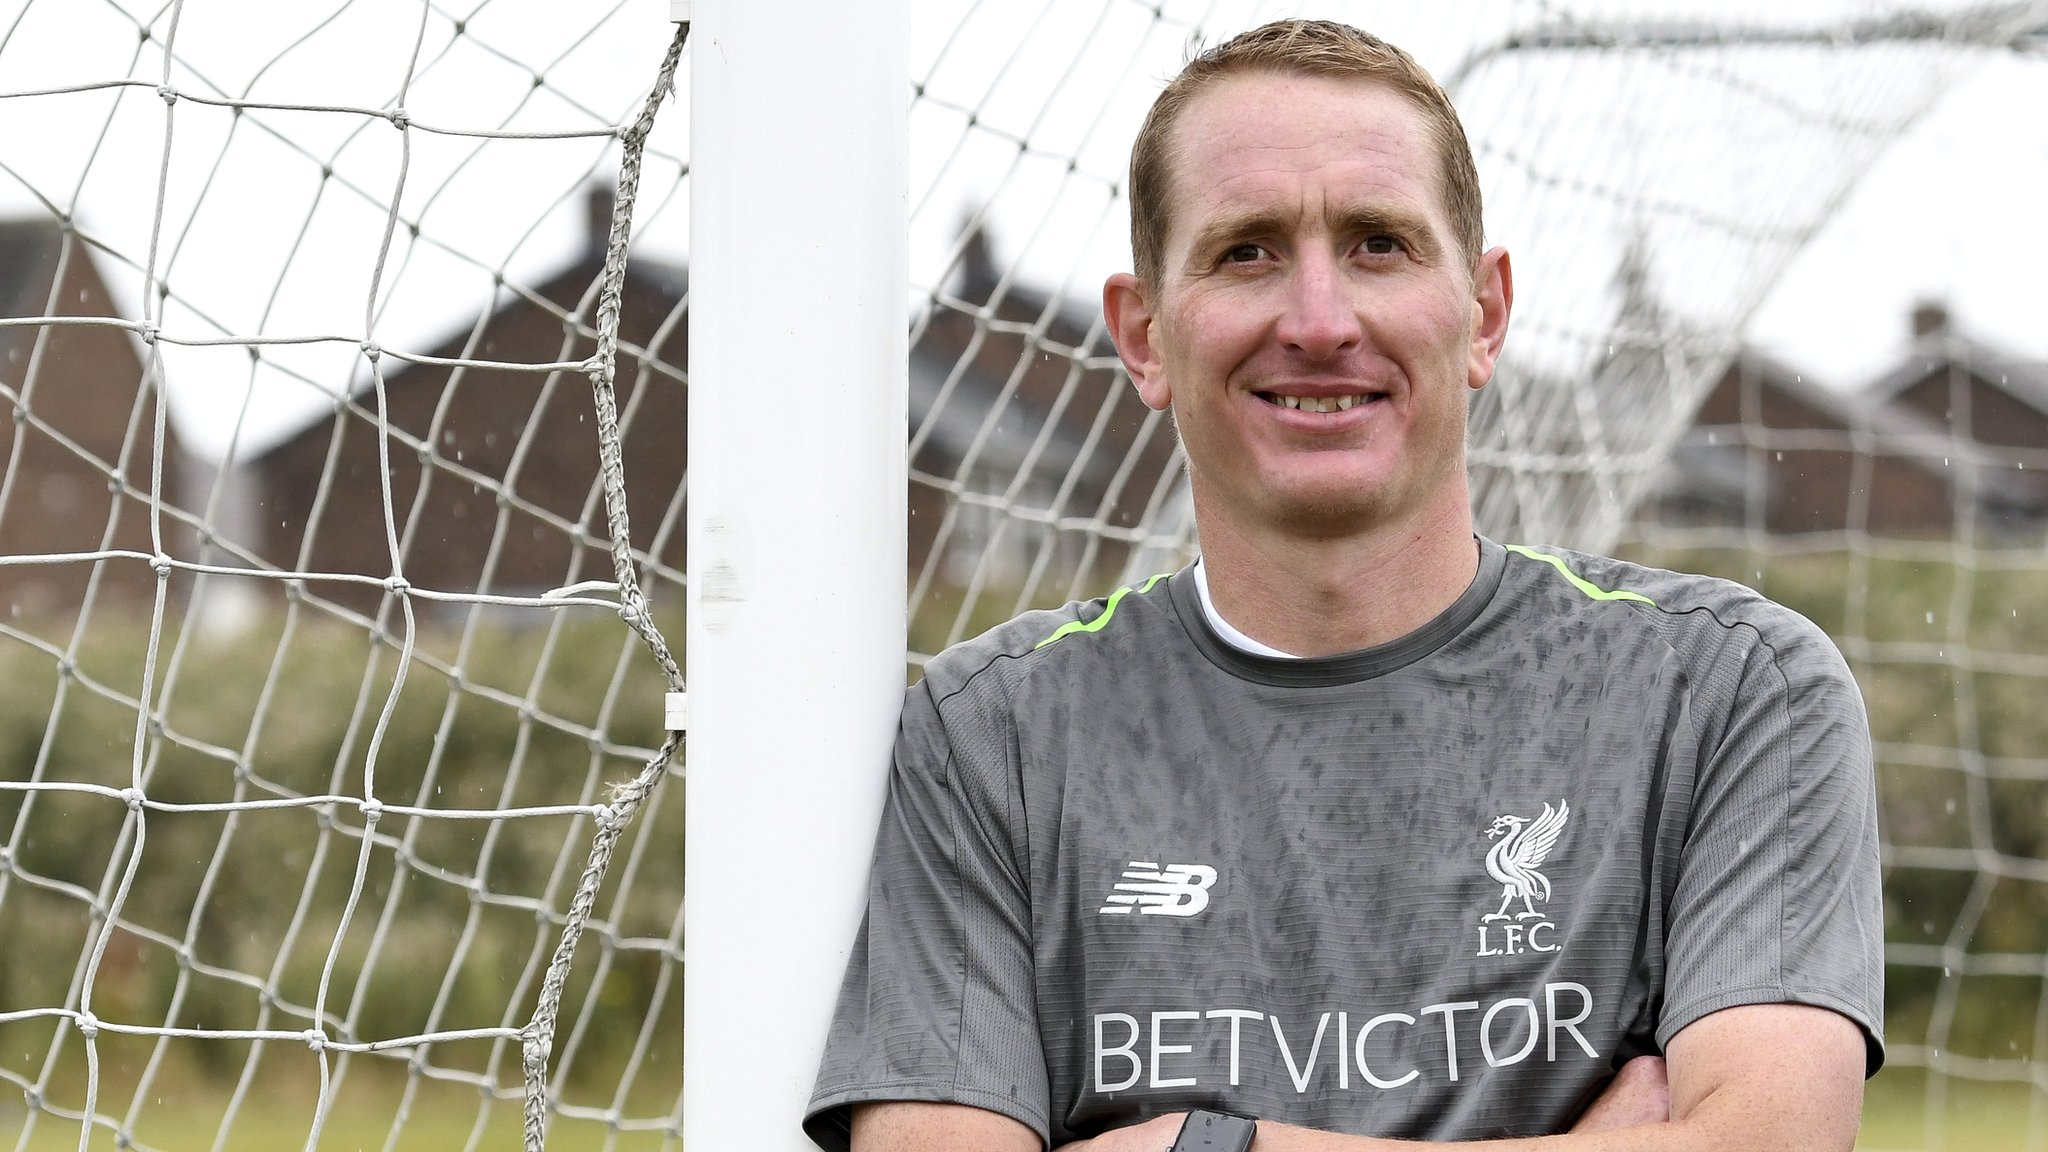 Liverpool back women's team but 'things need to improve' - Chris Kirkland